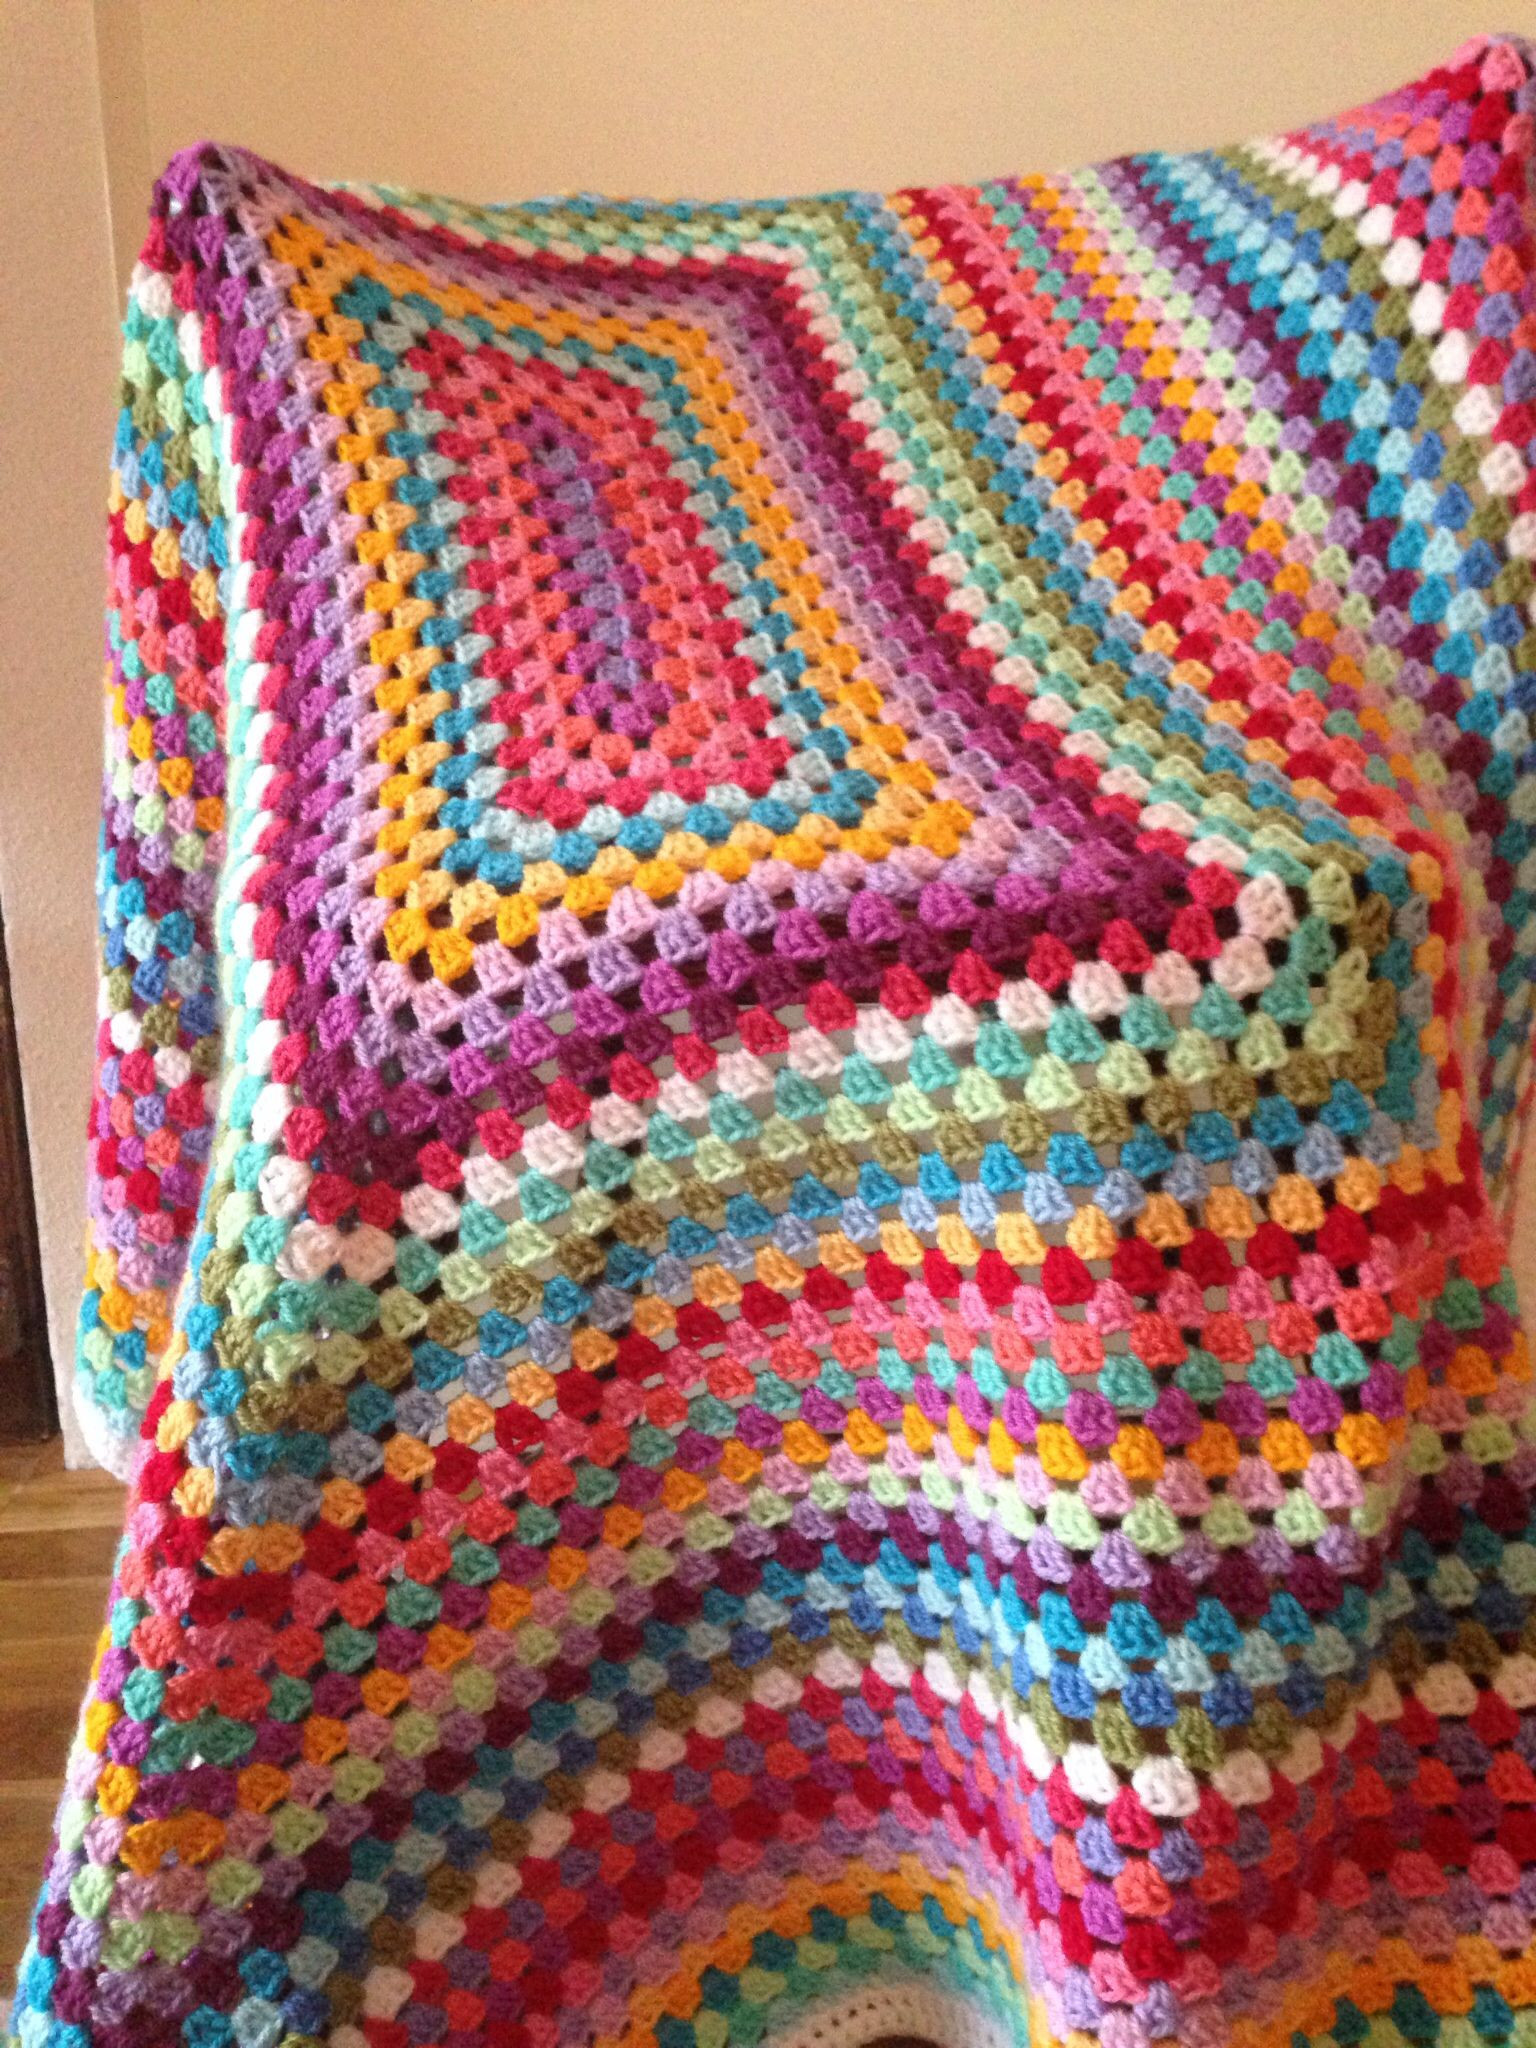 Crochet blanket love the colors Great idea for all